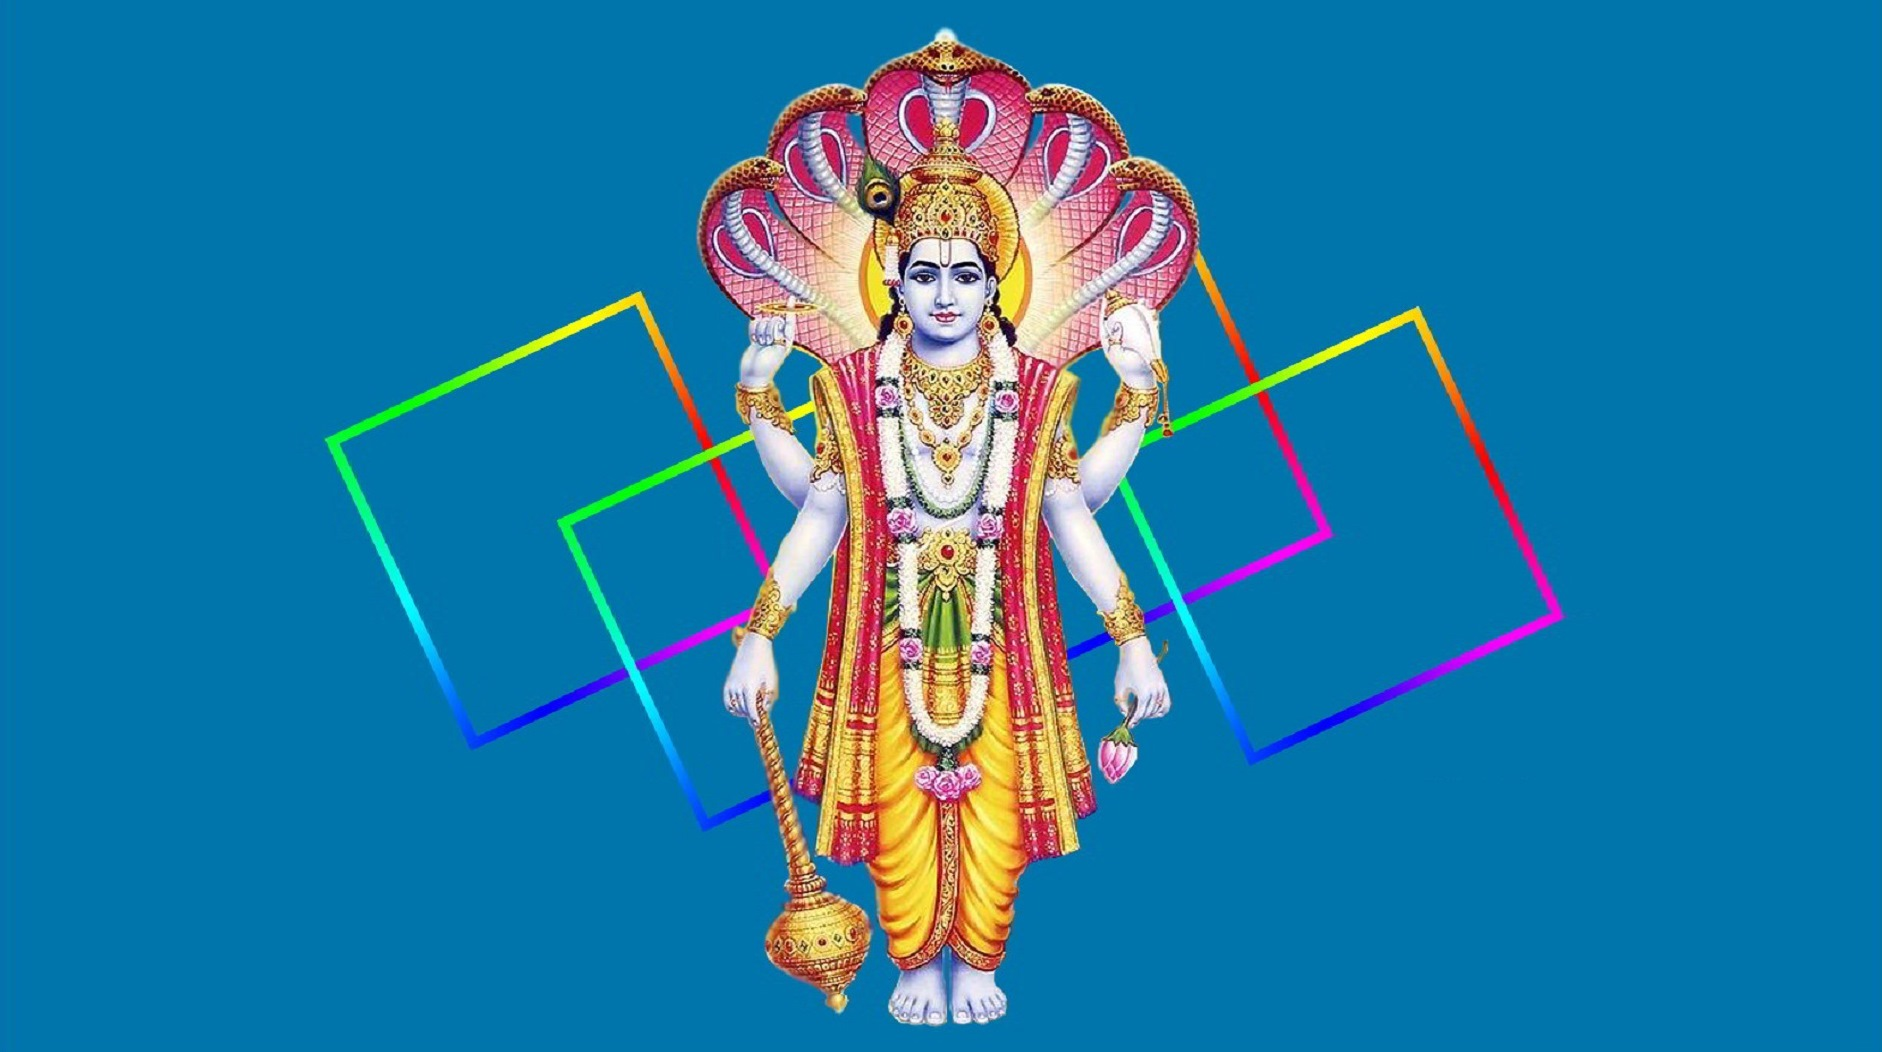 Lord Vishnu images, wallpapers, photos & pics, download Lord Vishnu